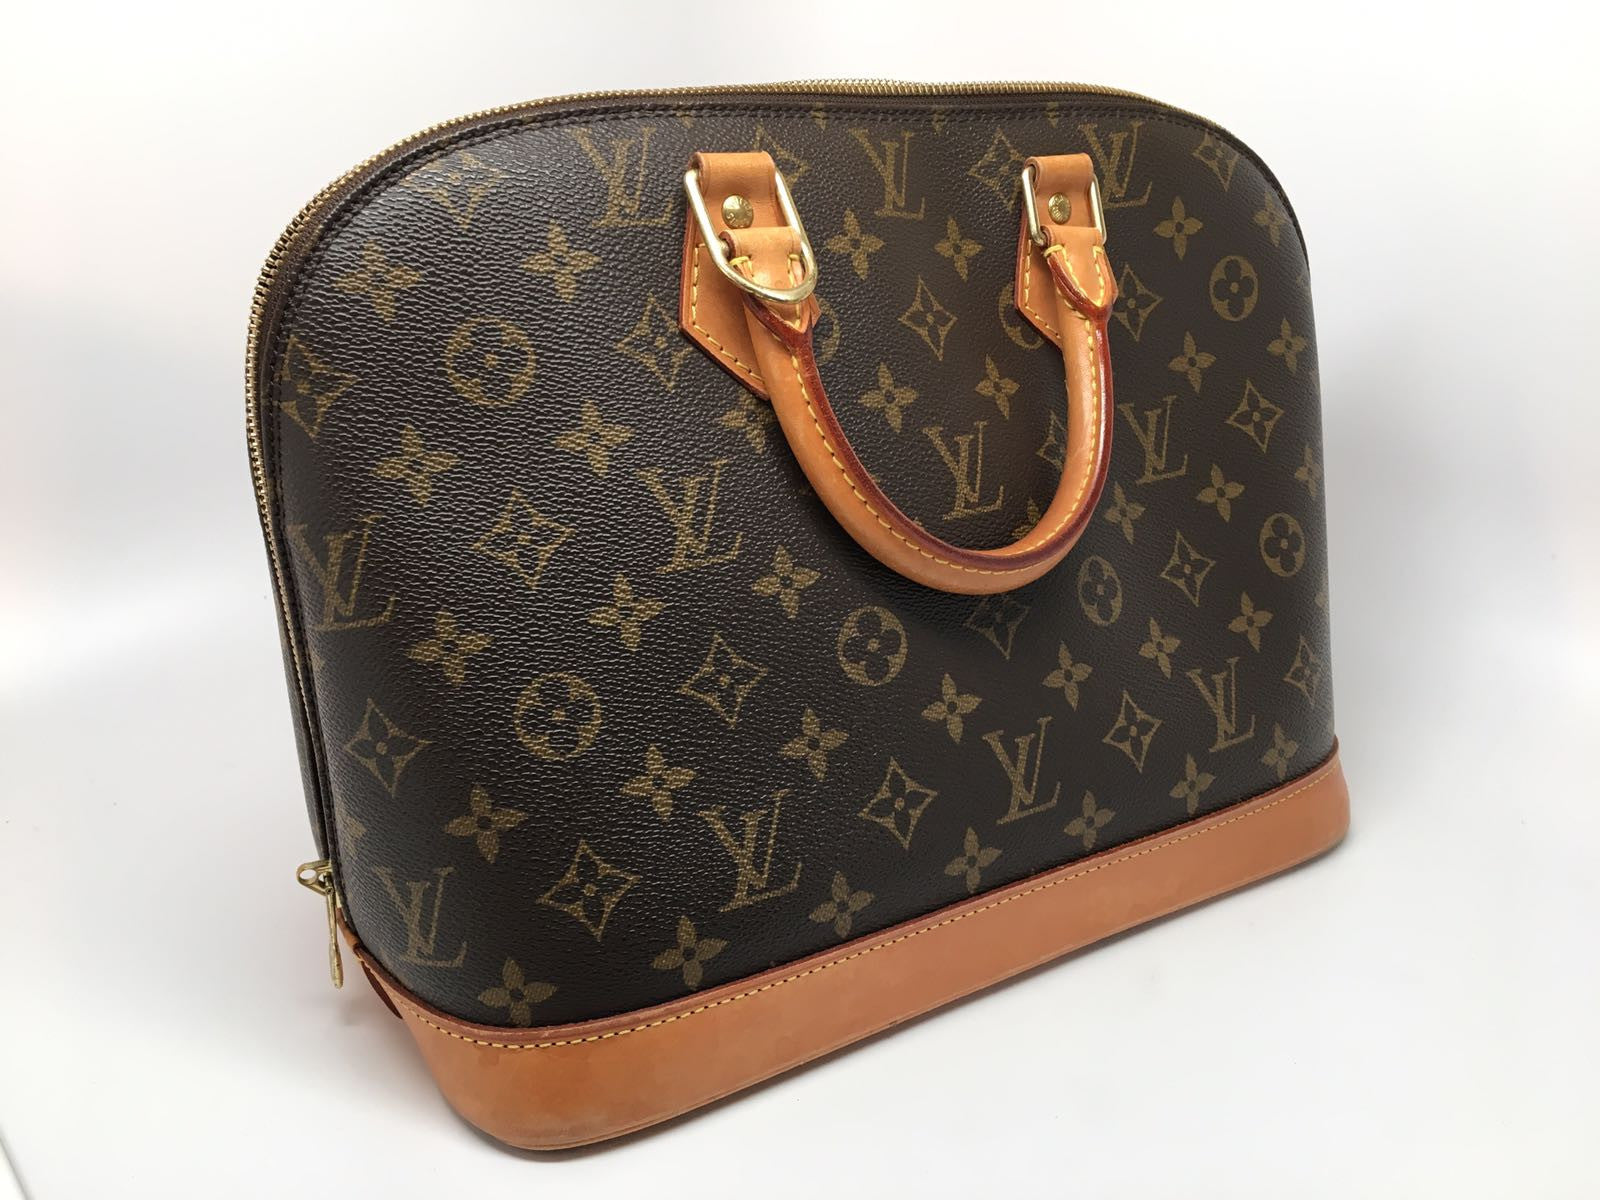 LOUIS VUITTON MONOGRAM ALMA BAG - MM